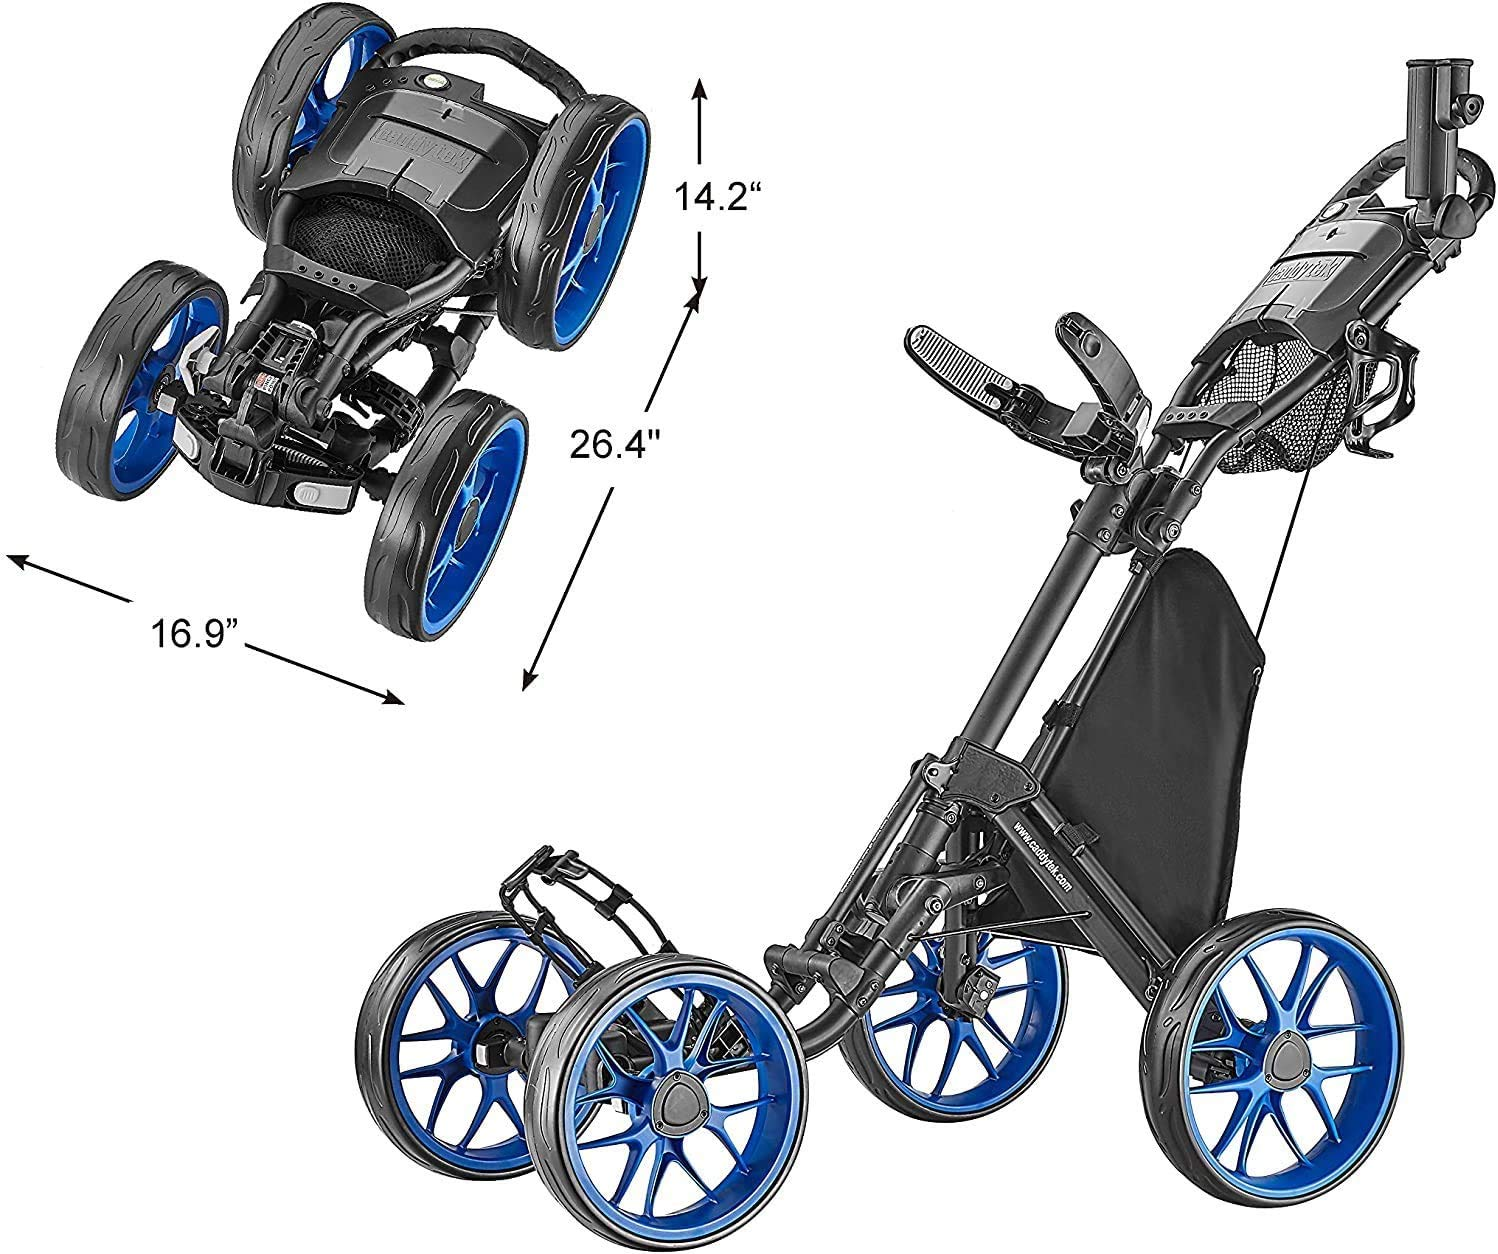 The Best golf push cart - Our pick